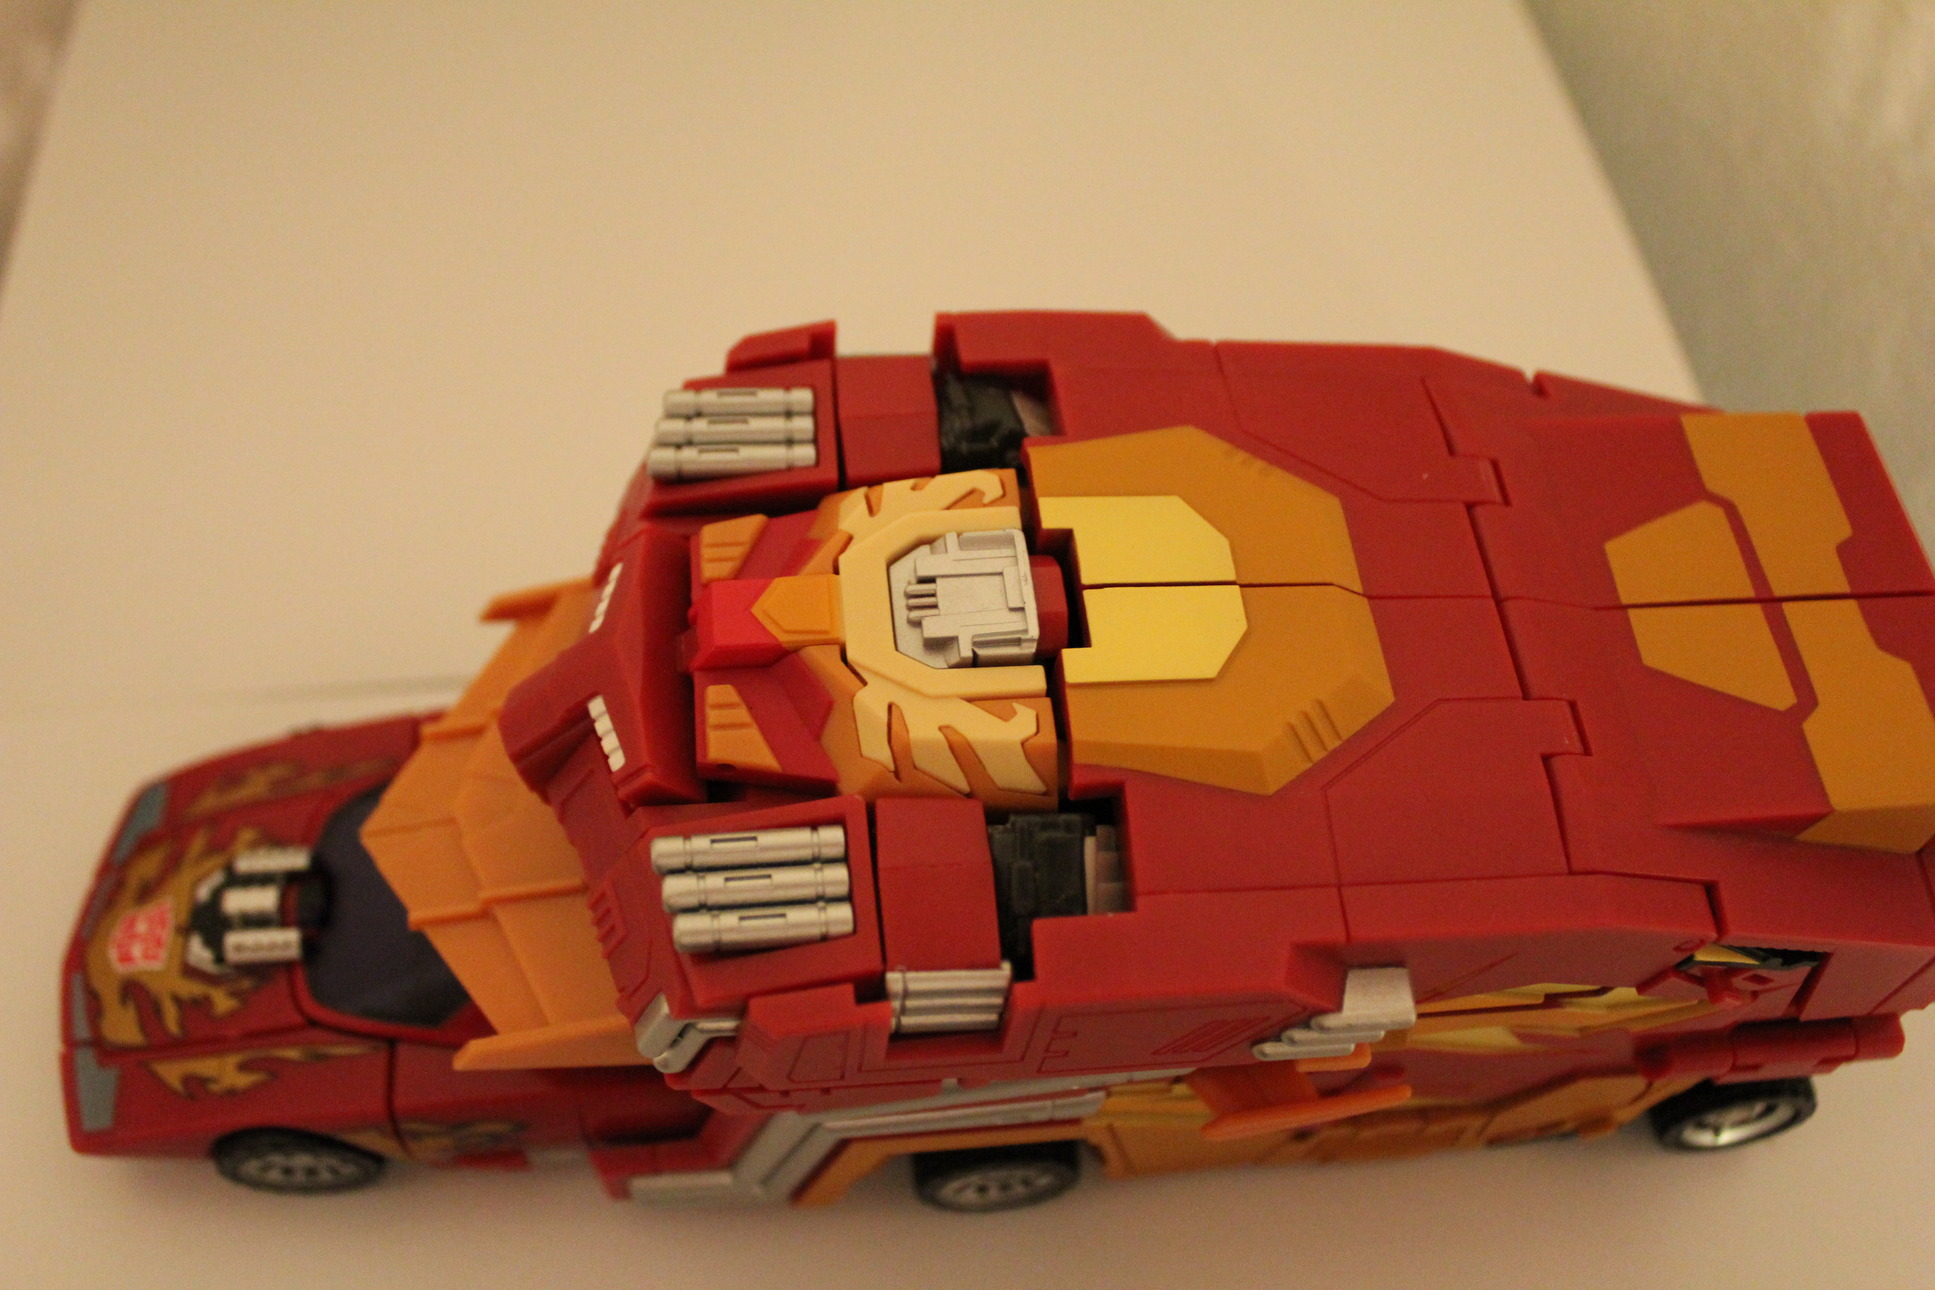 FansProject Protector Armor - Adding Articulated Hands!-img_1565.jpg